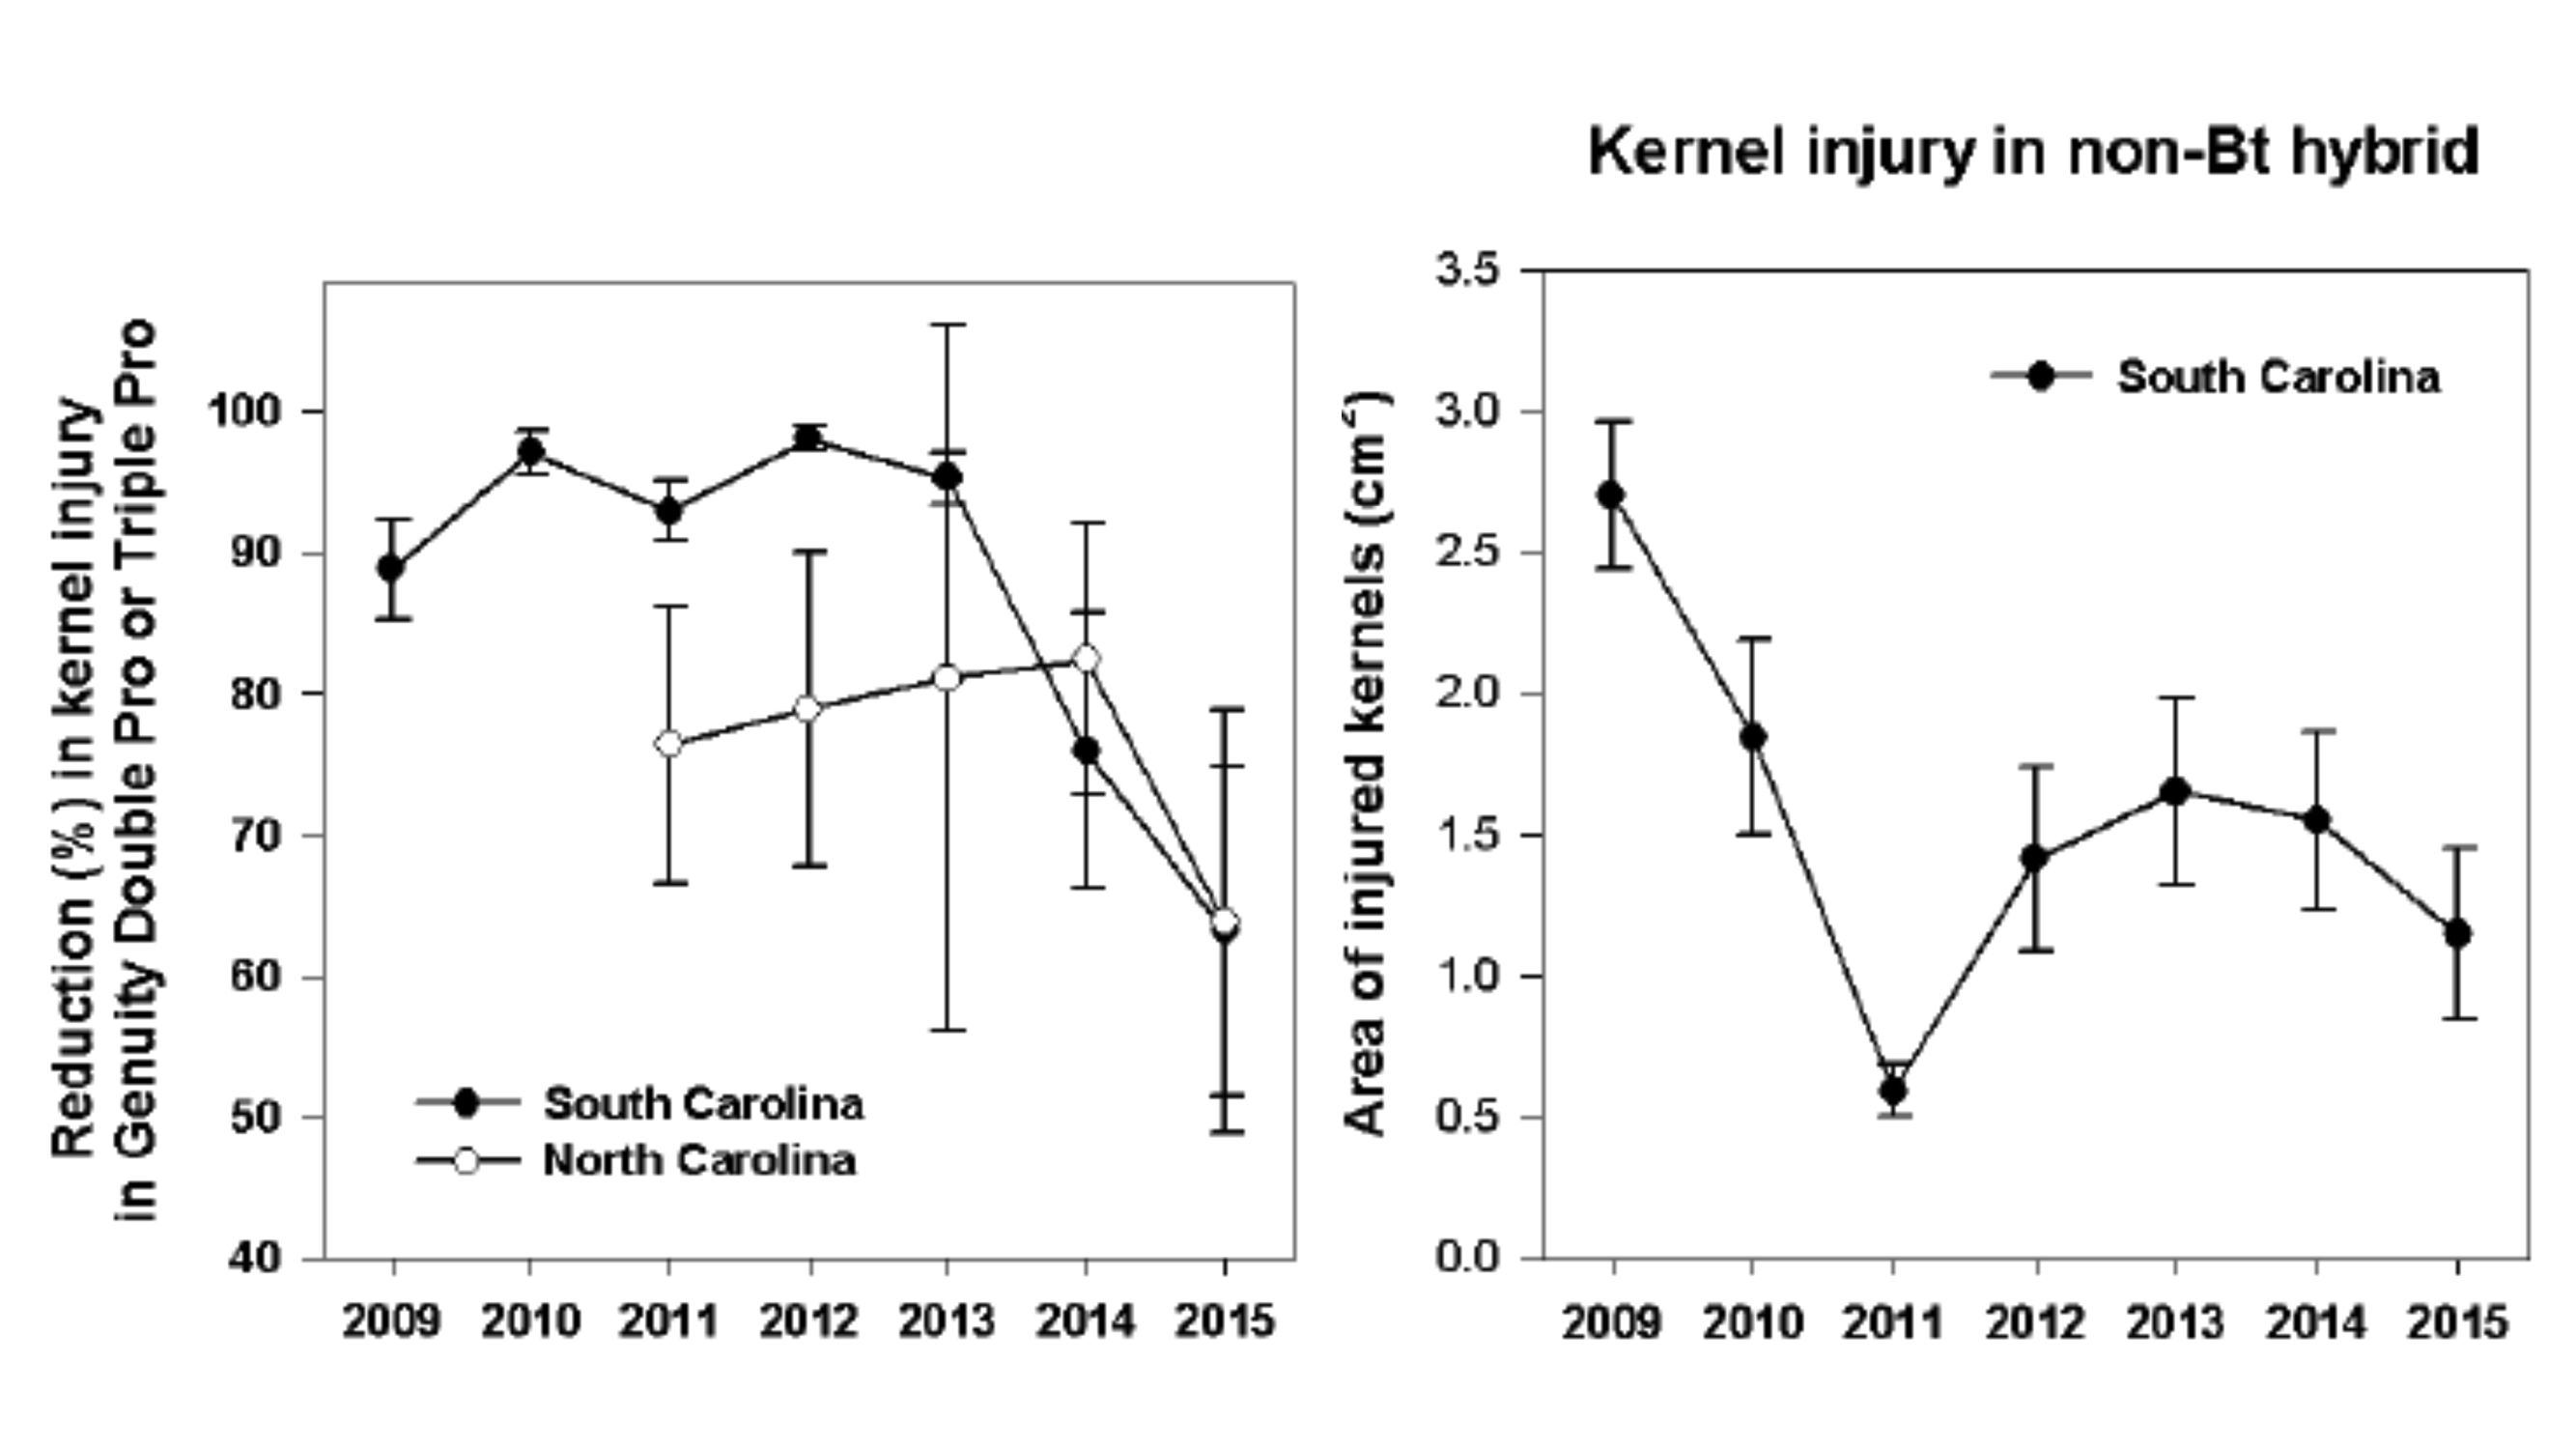 PastedGraphic-1 Percent reduction in corn earworm feeding on VT Double PRO hybrids (efficacy) compared to non-Bt hybrids over time and area of kernels injured by corn earworms over time (pressure) in South Carolina. Graphic from Francis Reay-Jones, Clemson U.